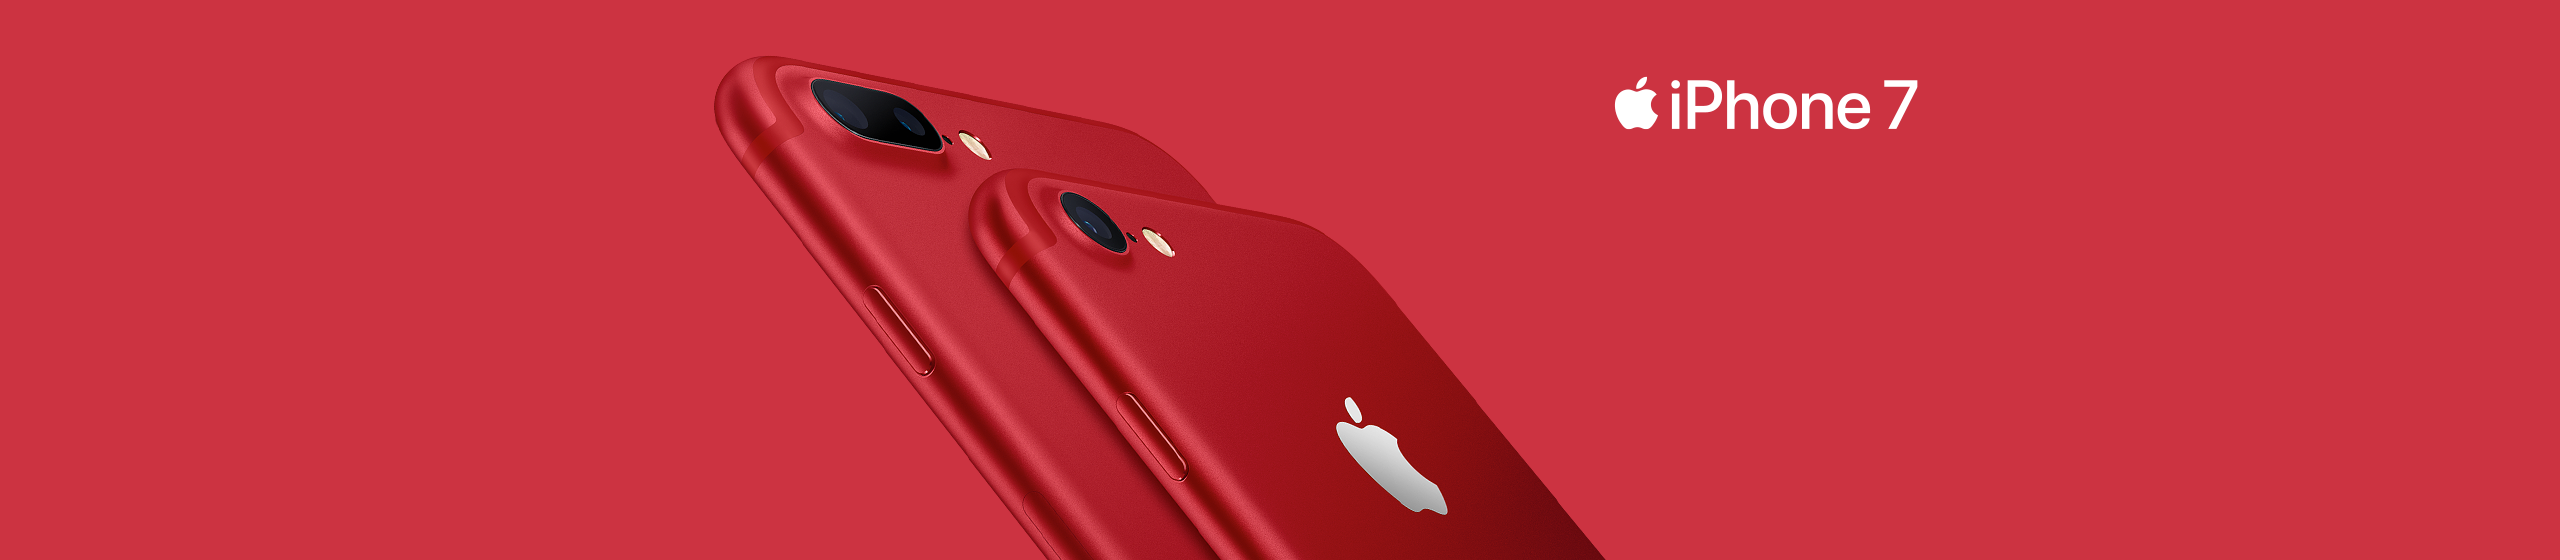 apple_red_banner_nobuttons@2x.png